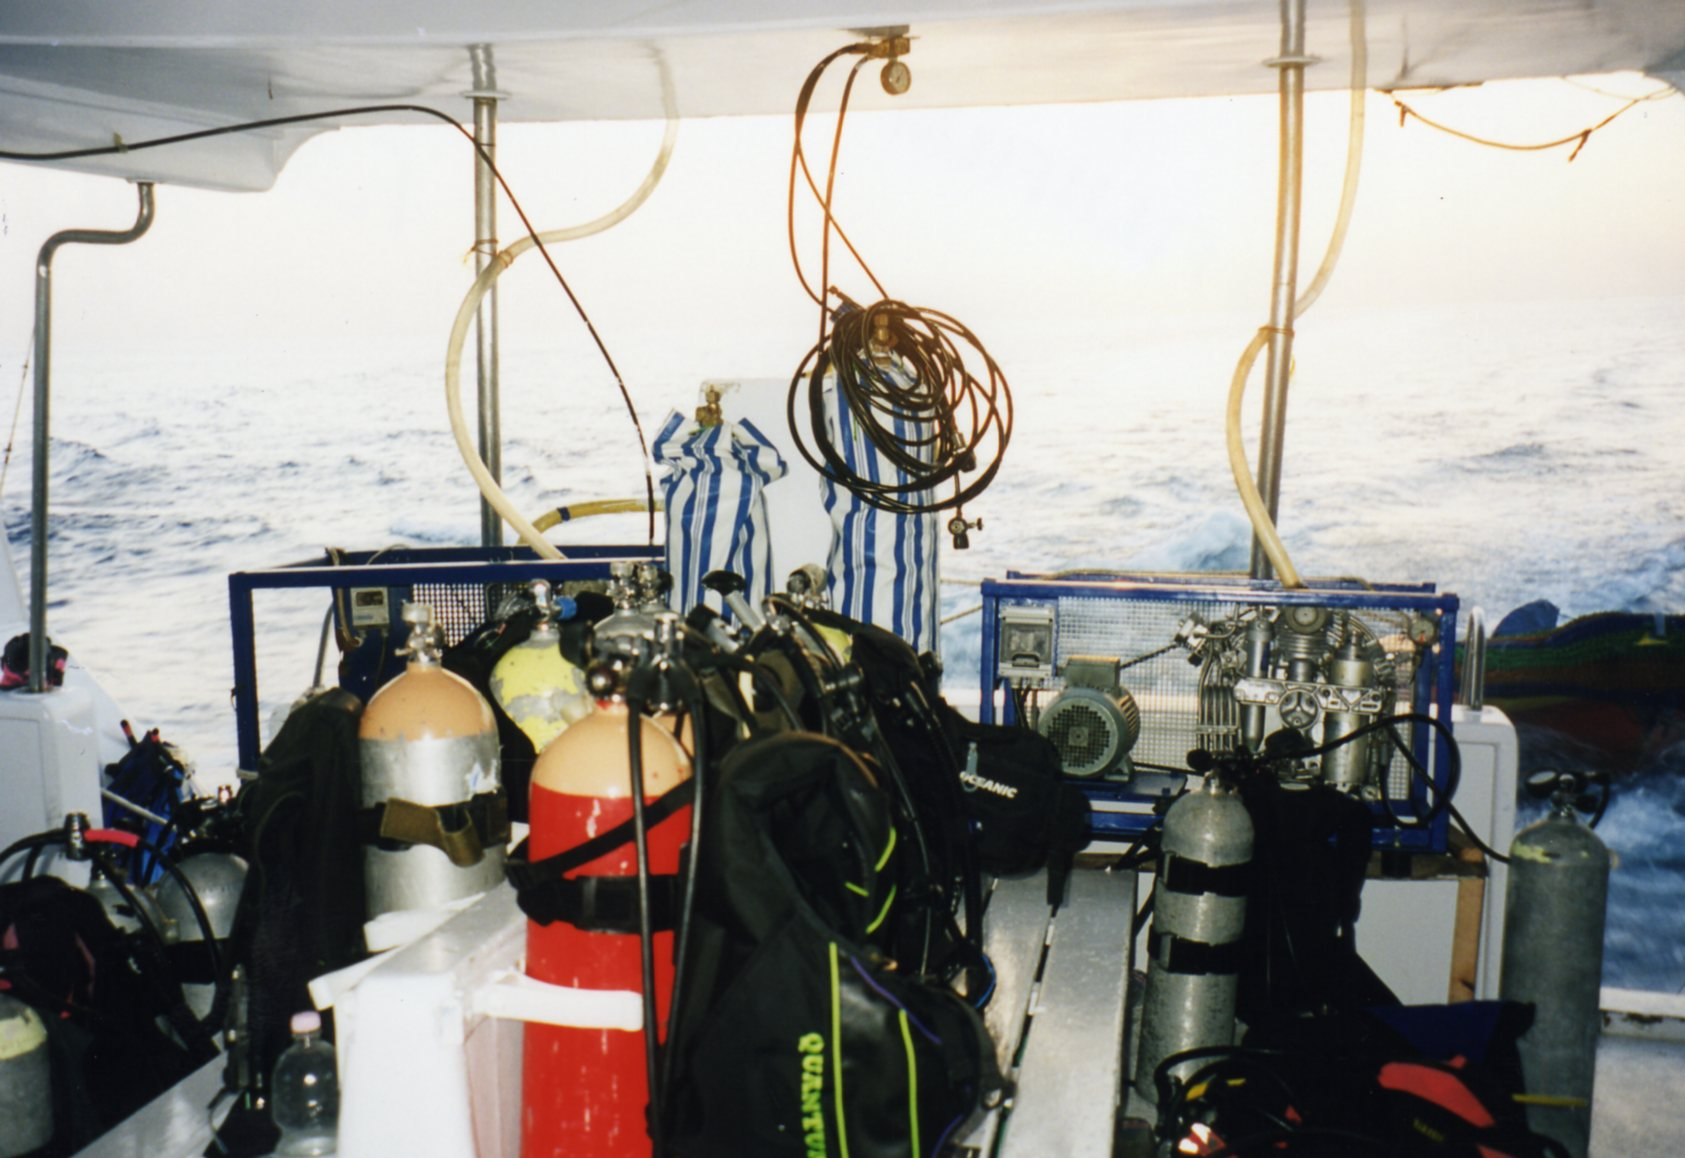 Our dive gear being stowed on board